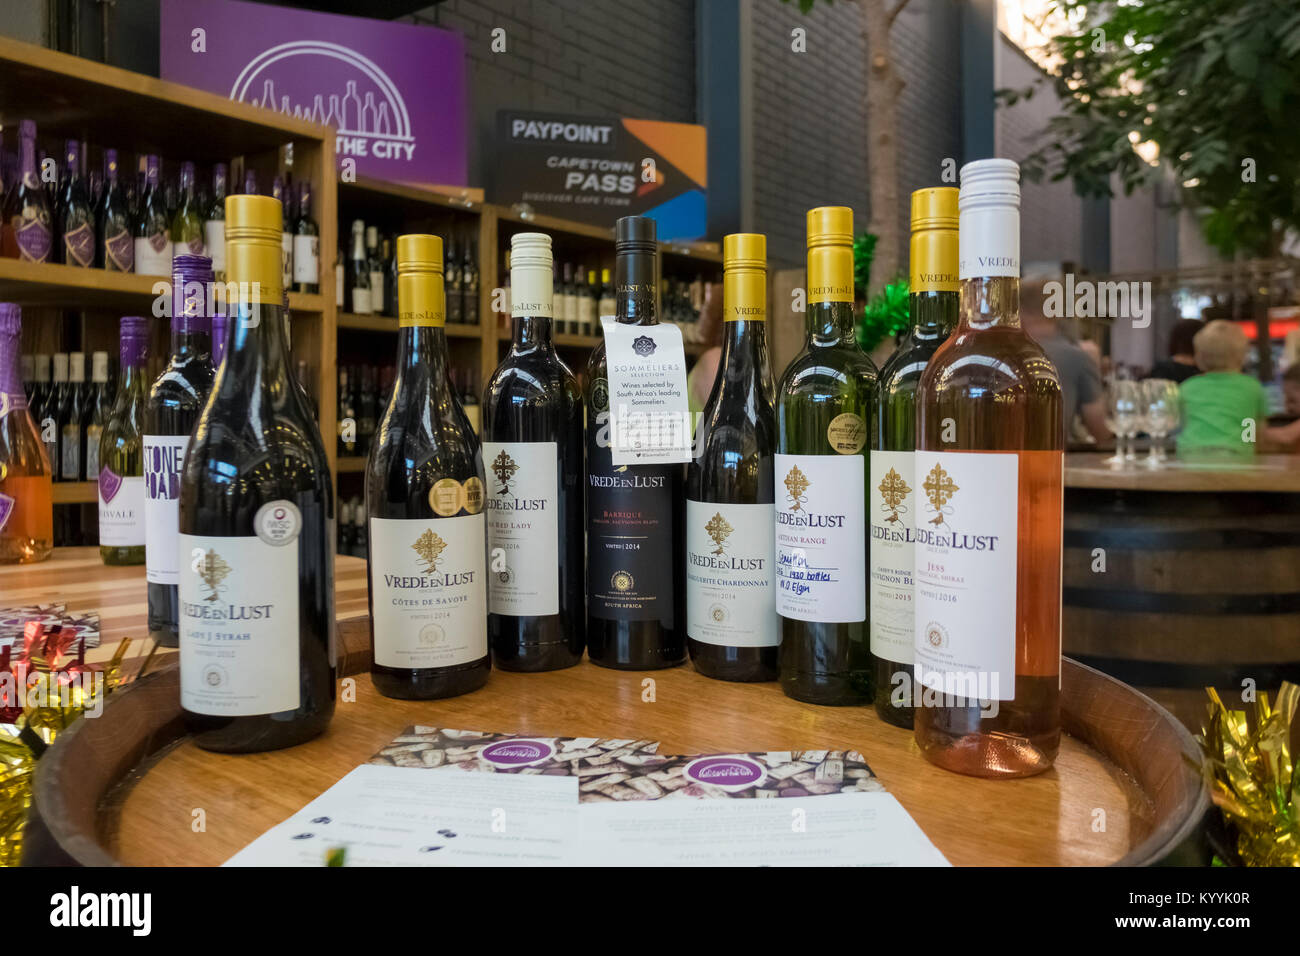 South African wine at The Watershed, V&A Waterfront, Cape Town, South Africa - Stock Image